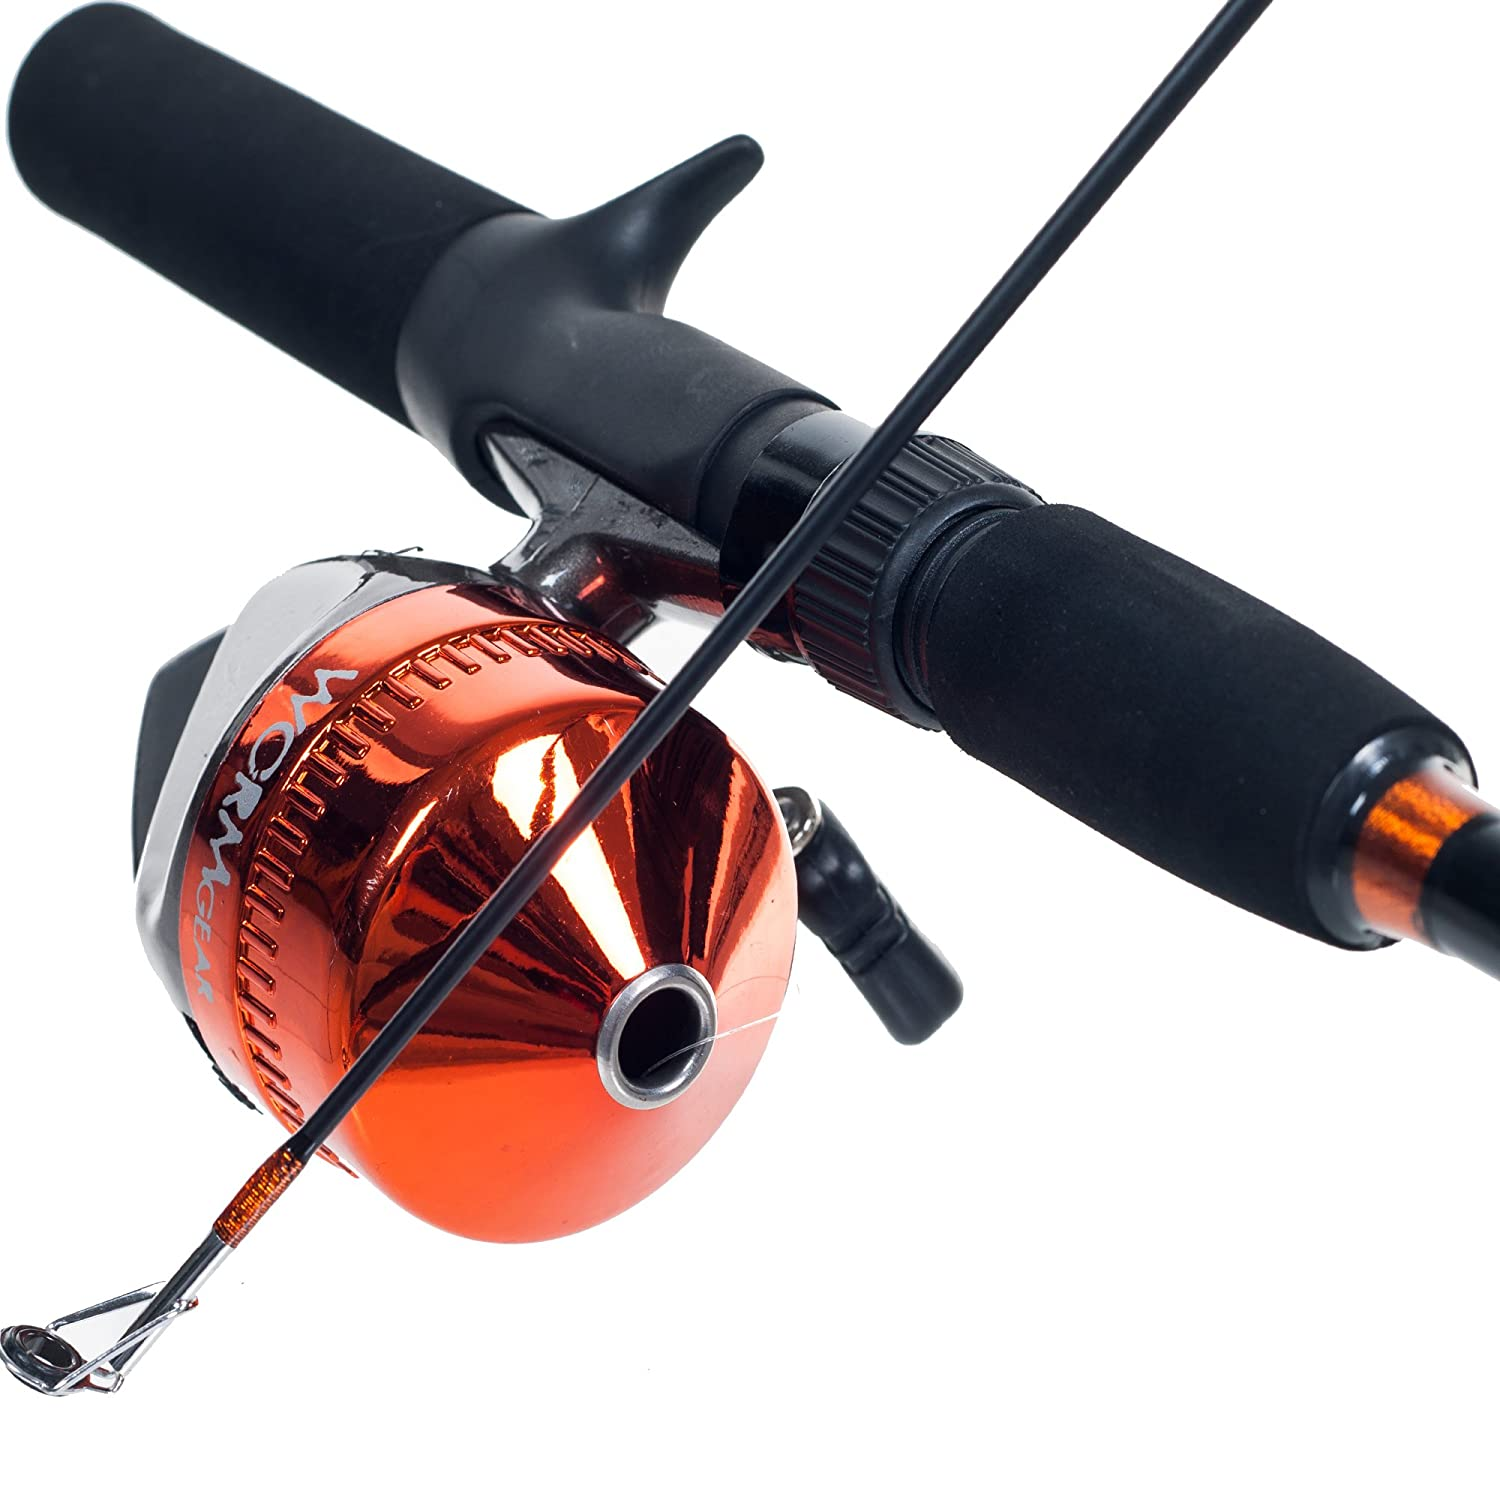 Amazon.com : South Bend Worm Gear Fishing Rod and Spincast Reel ...